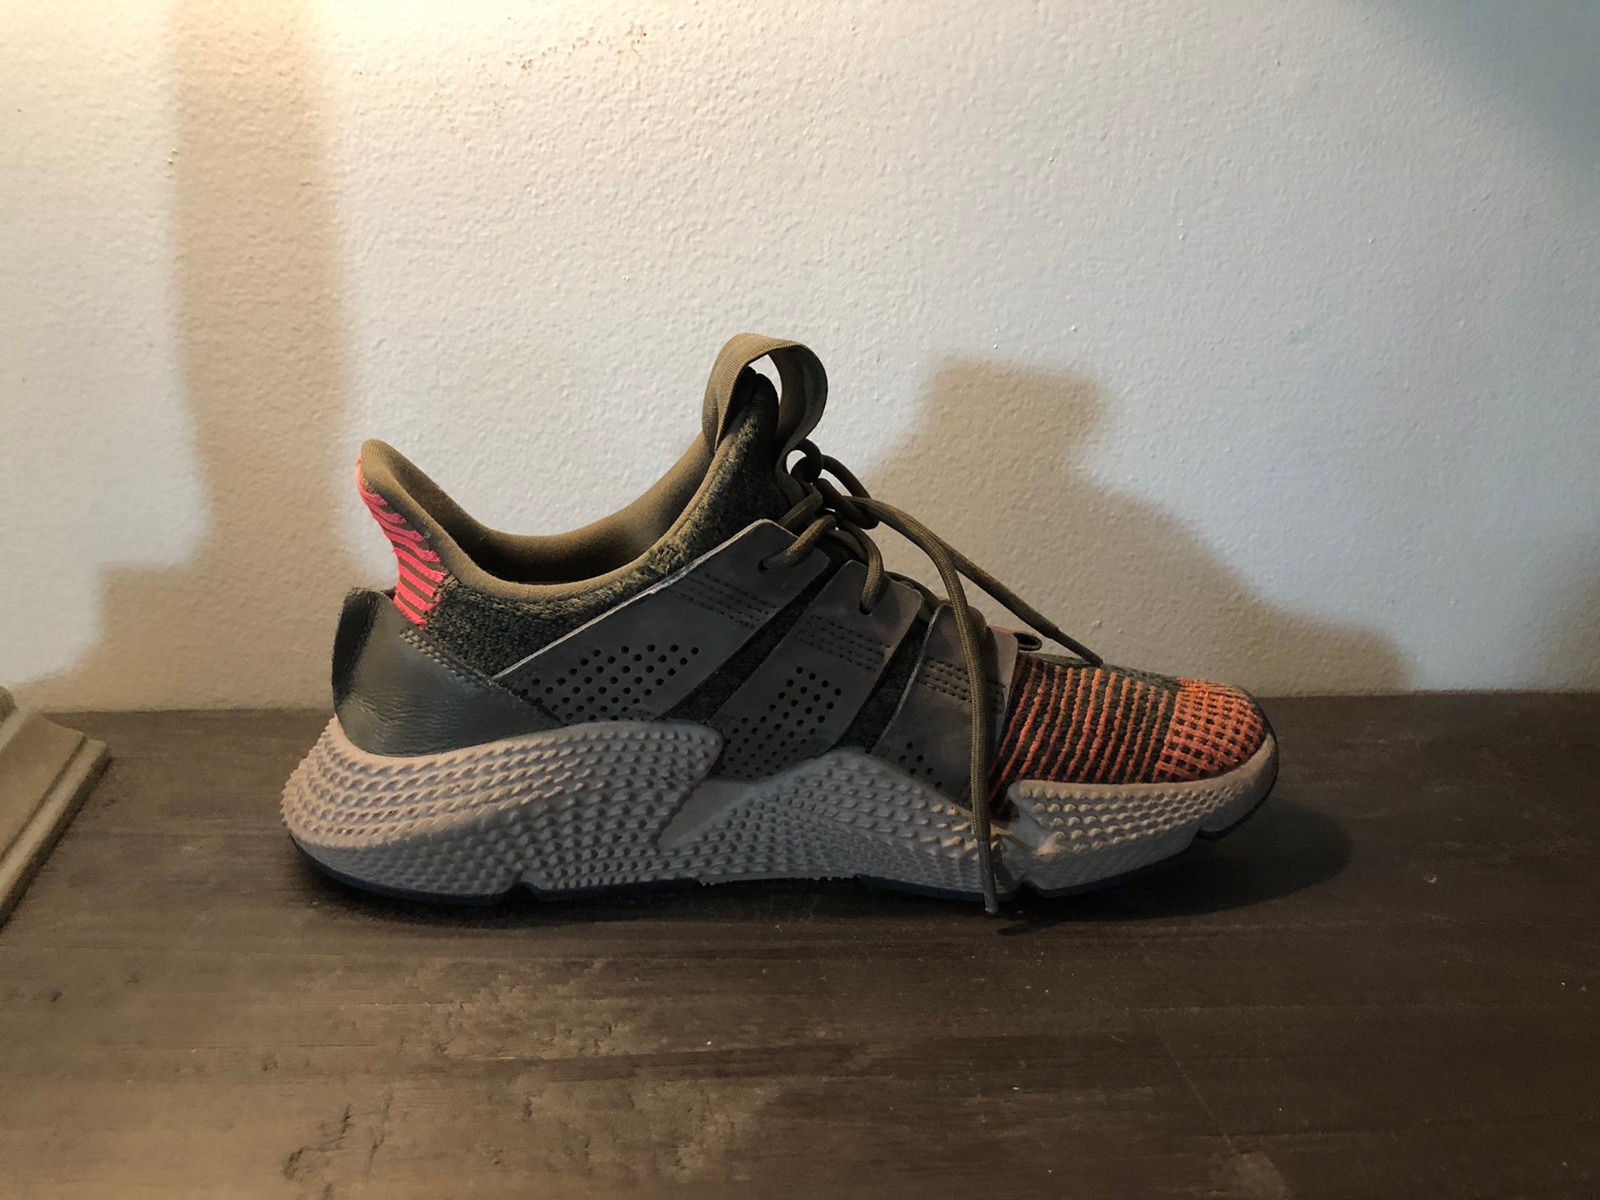 Adidas Prophere Green Sneakers | FINN.no